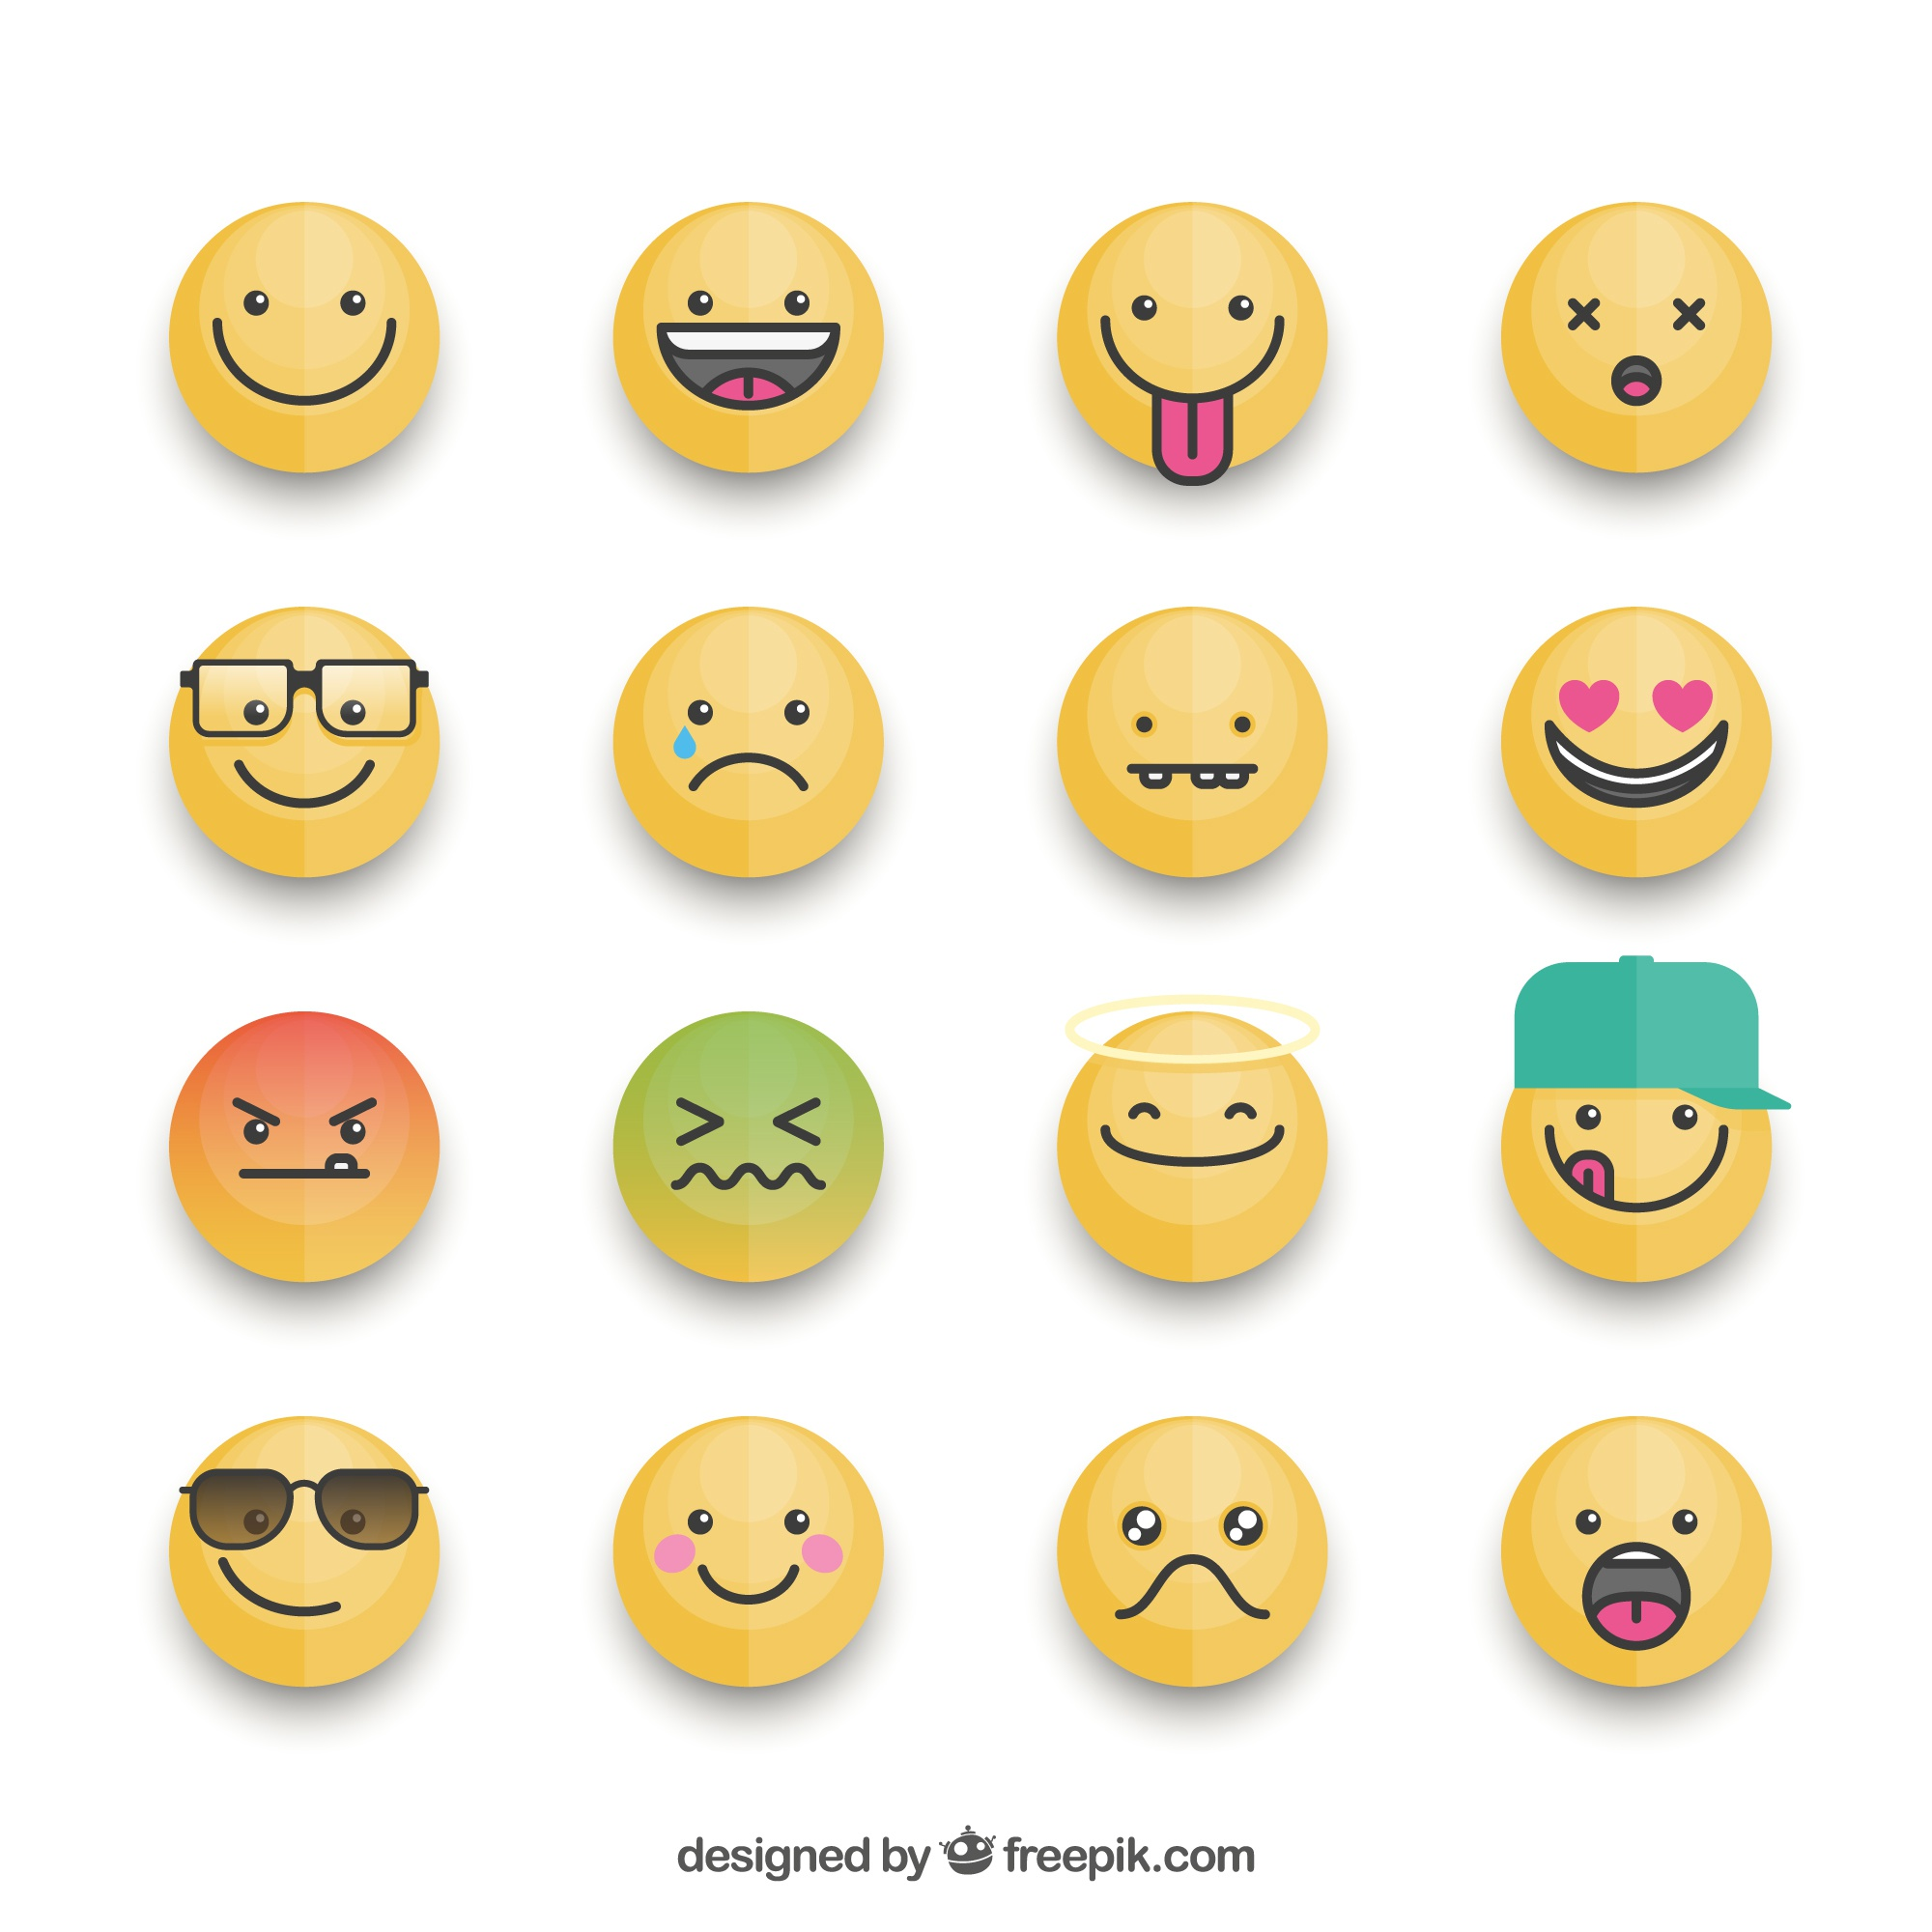 Fantastic collection of emoticons with different expressions